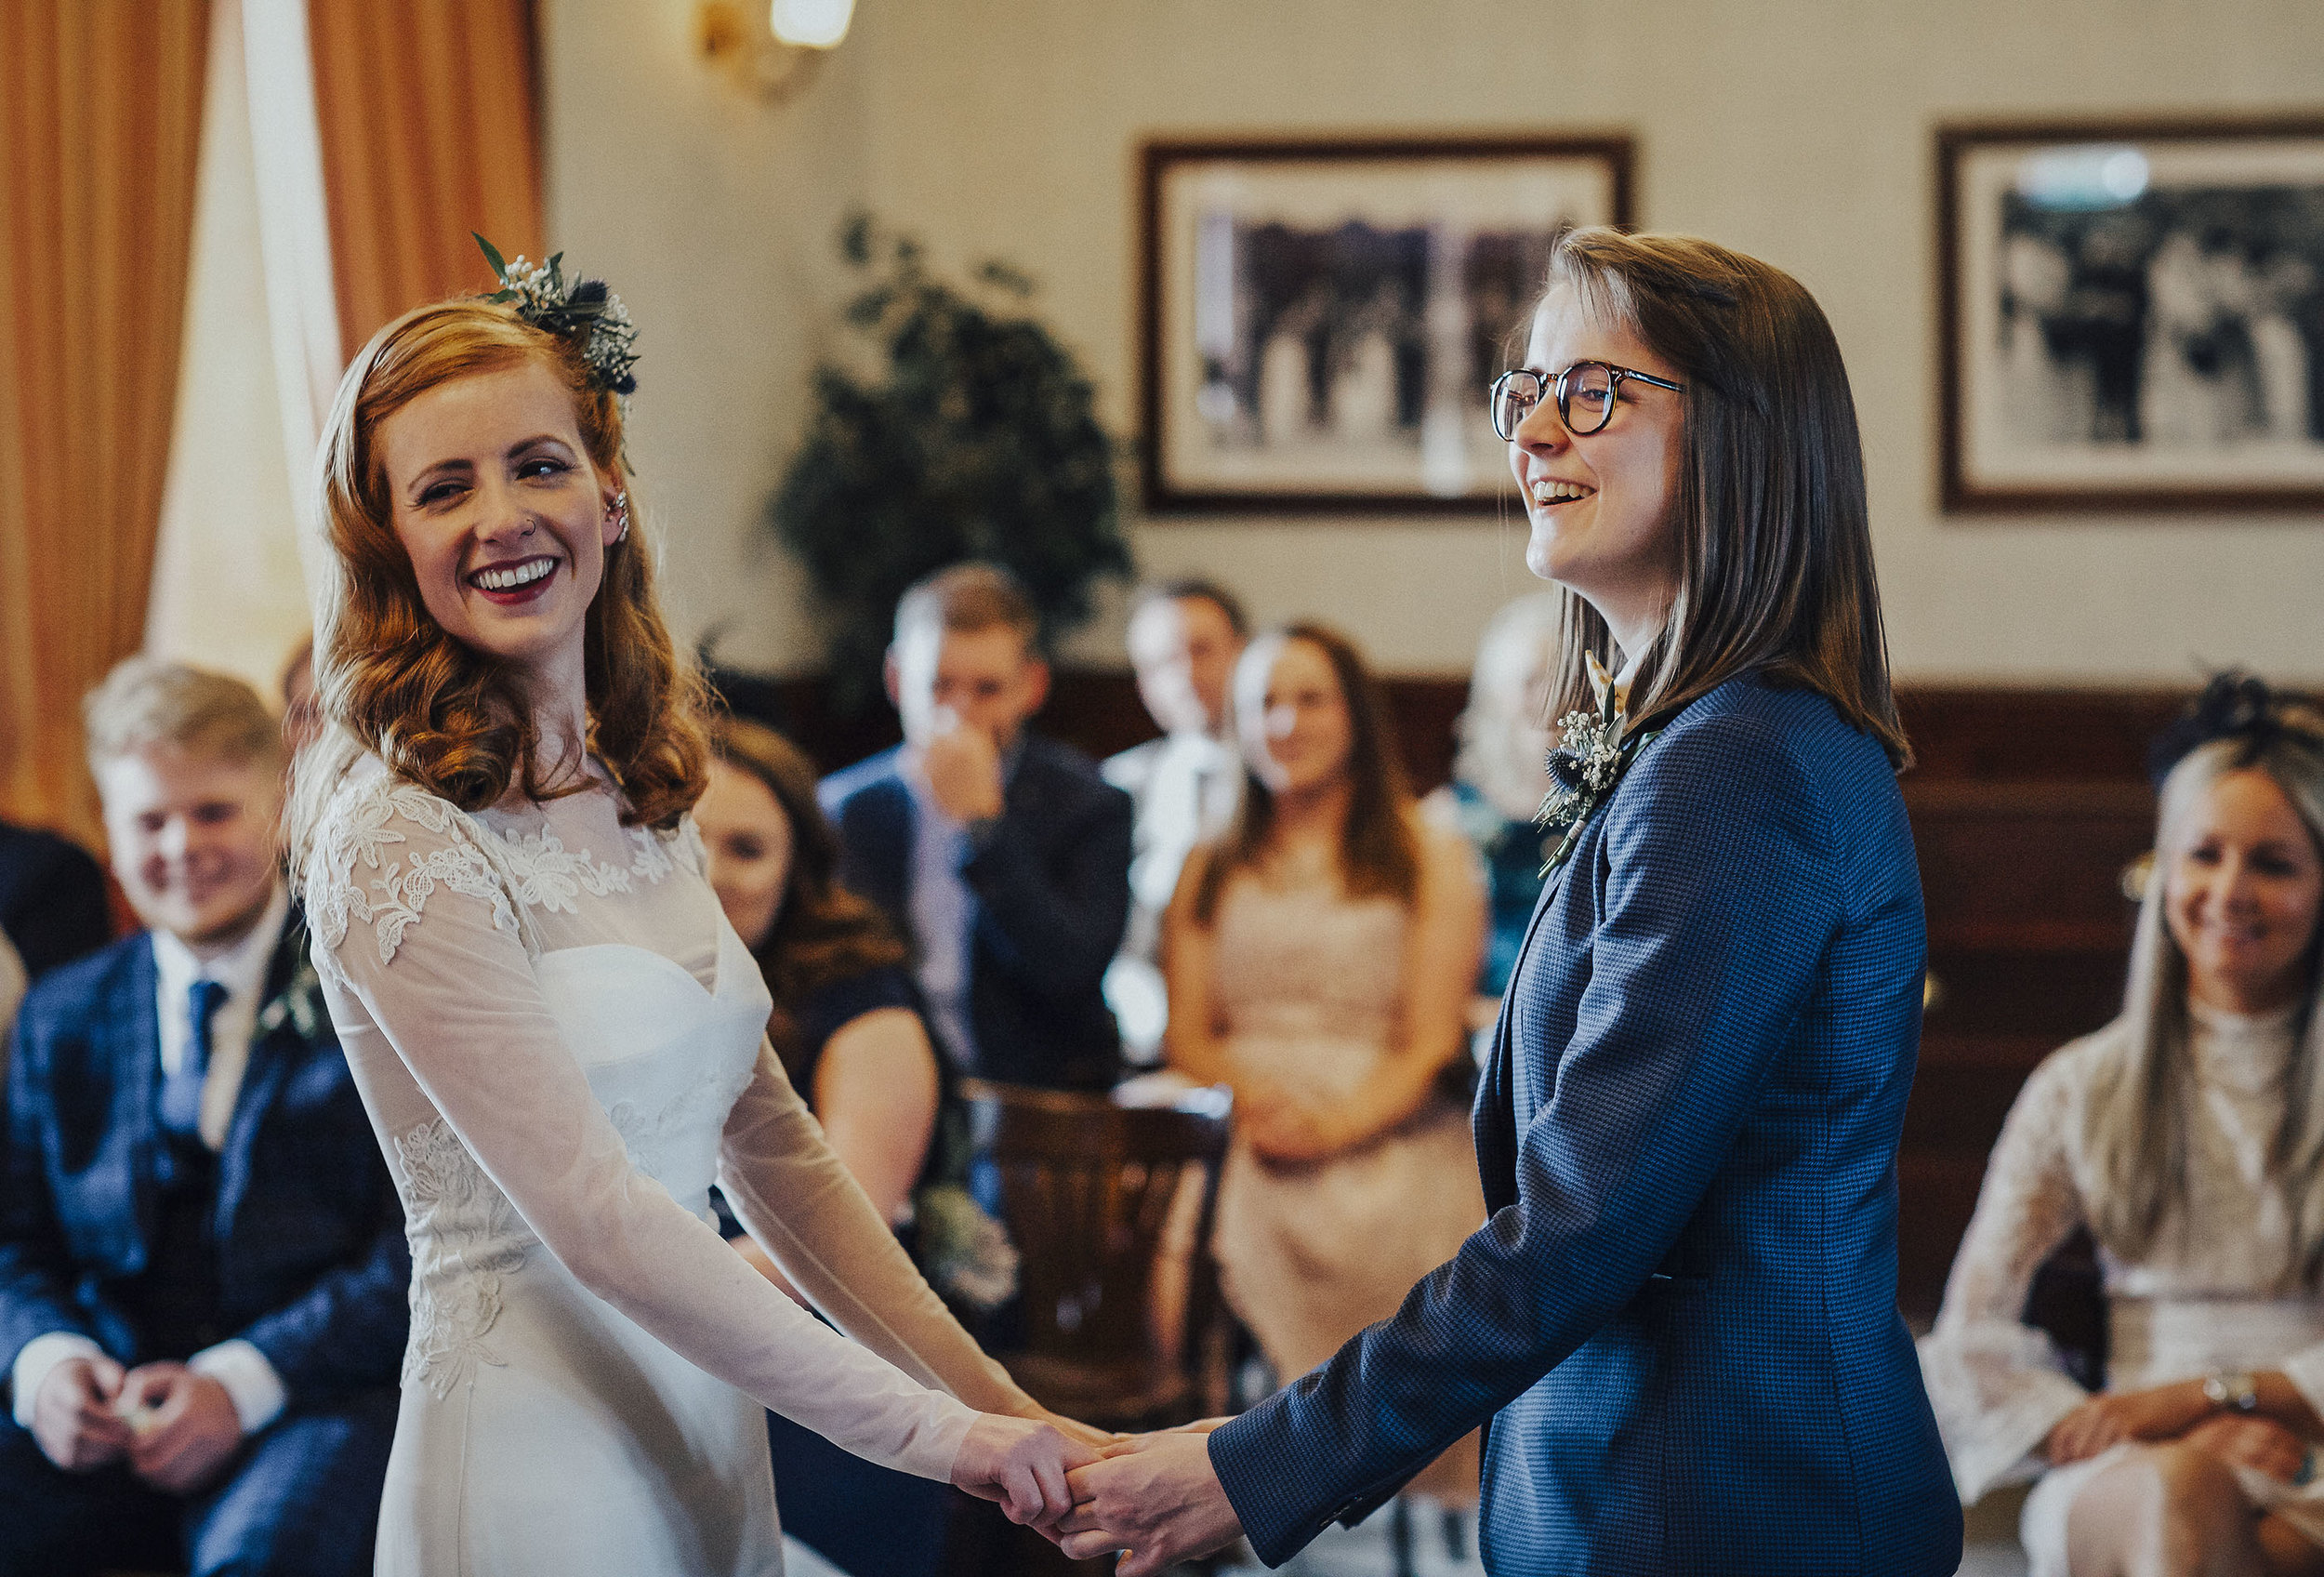 SAME_SEX_WEDDING_PHOTOGRAPHER_SLOANS_GLASGOW_PJ_PHILLIPS_PHOTOGRAPHY_37.jpg